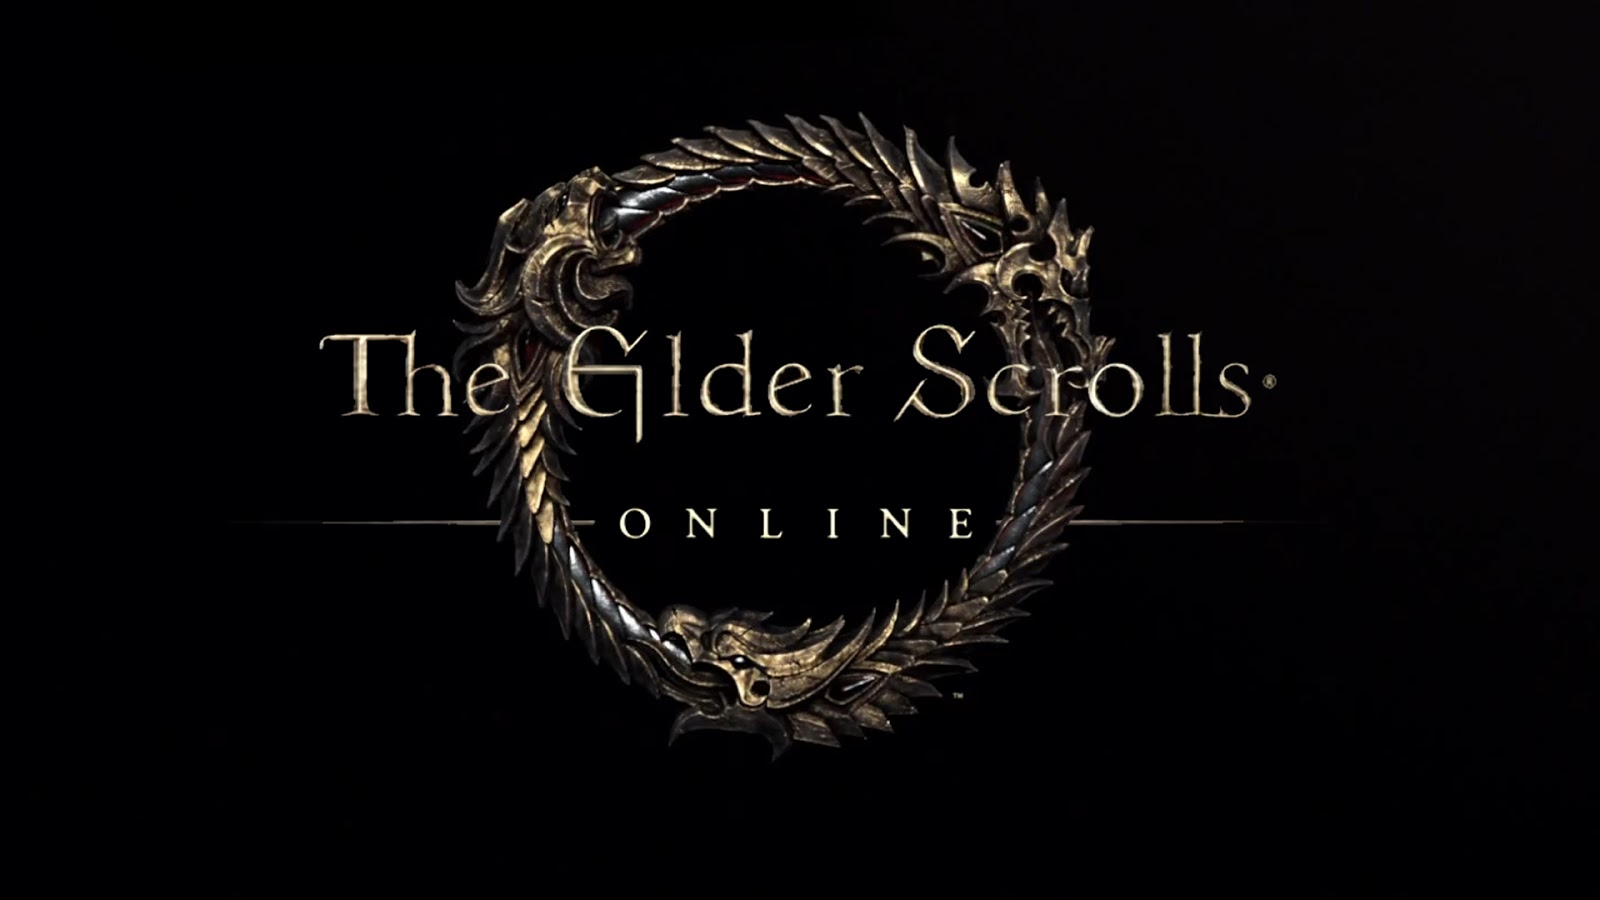 The_Elder_Scrolls_Online header black